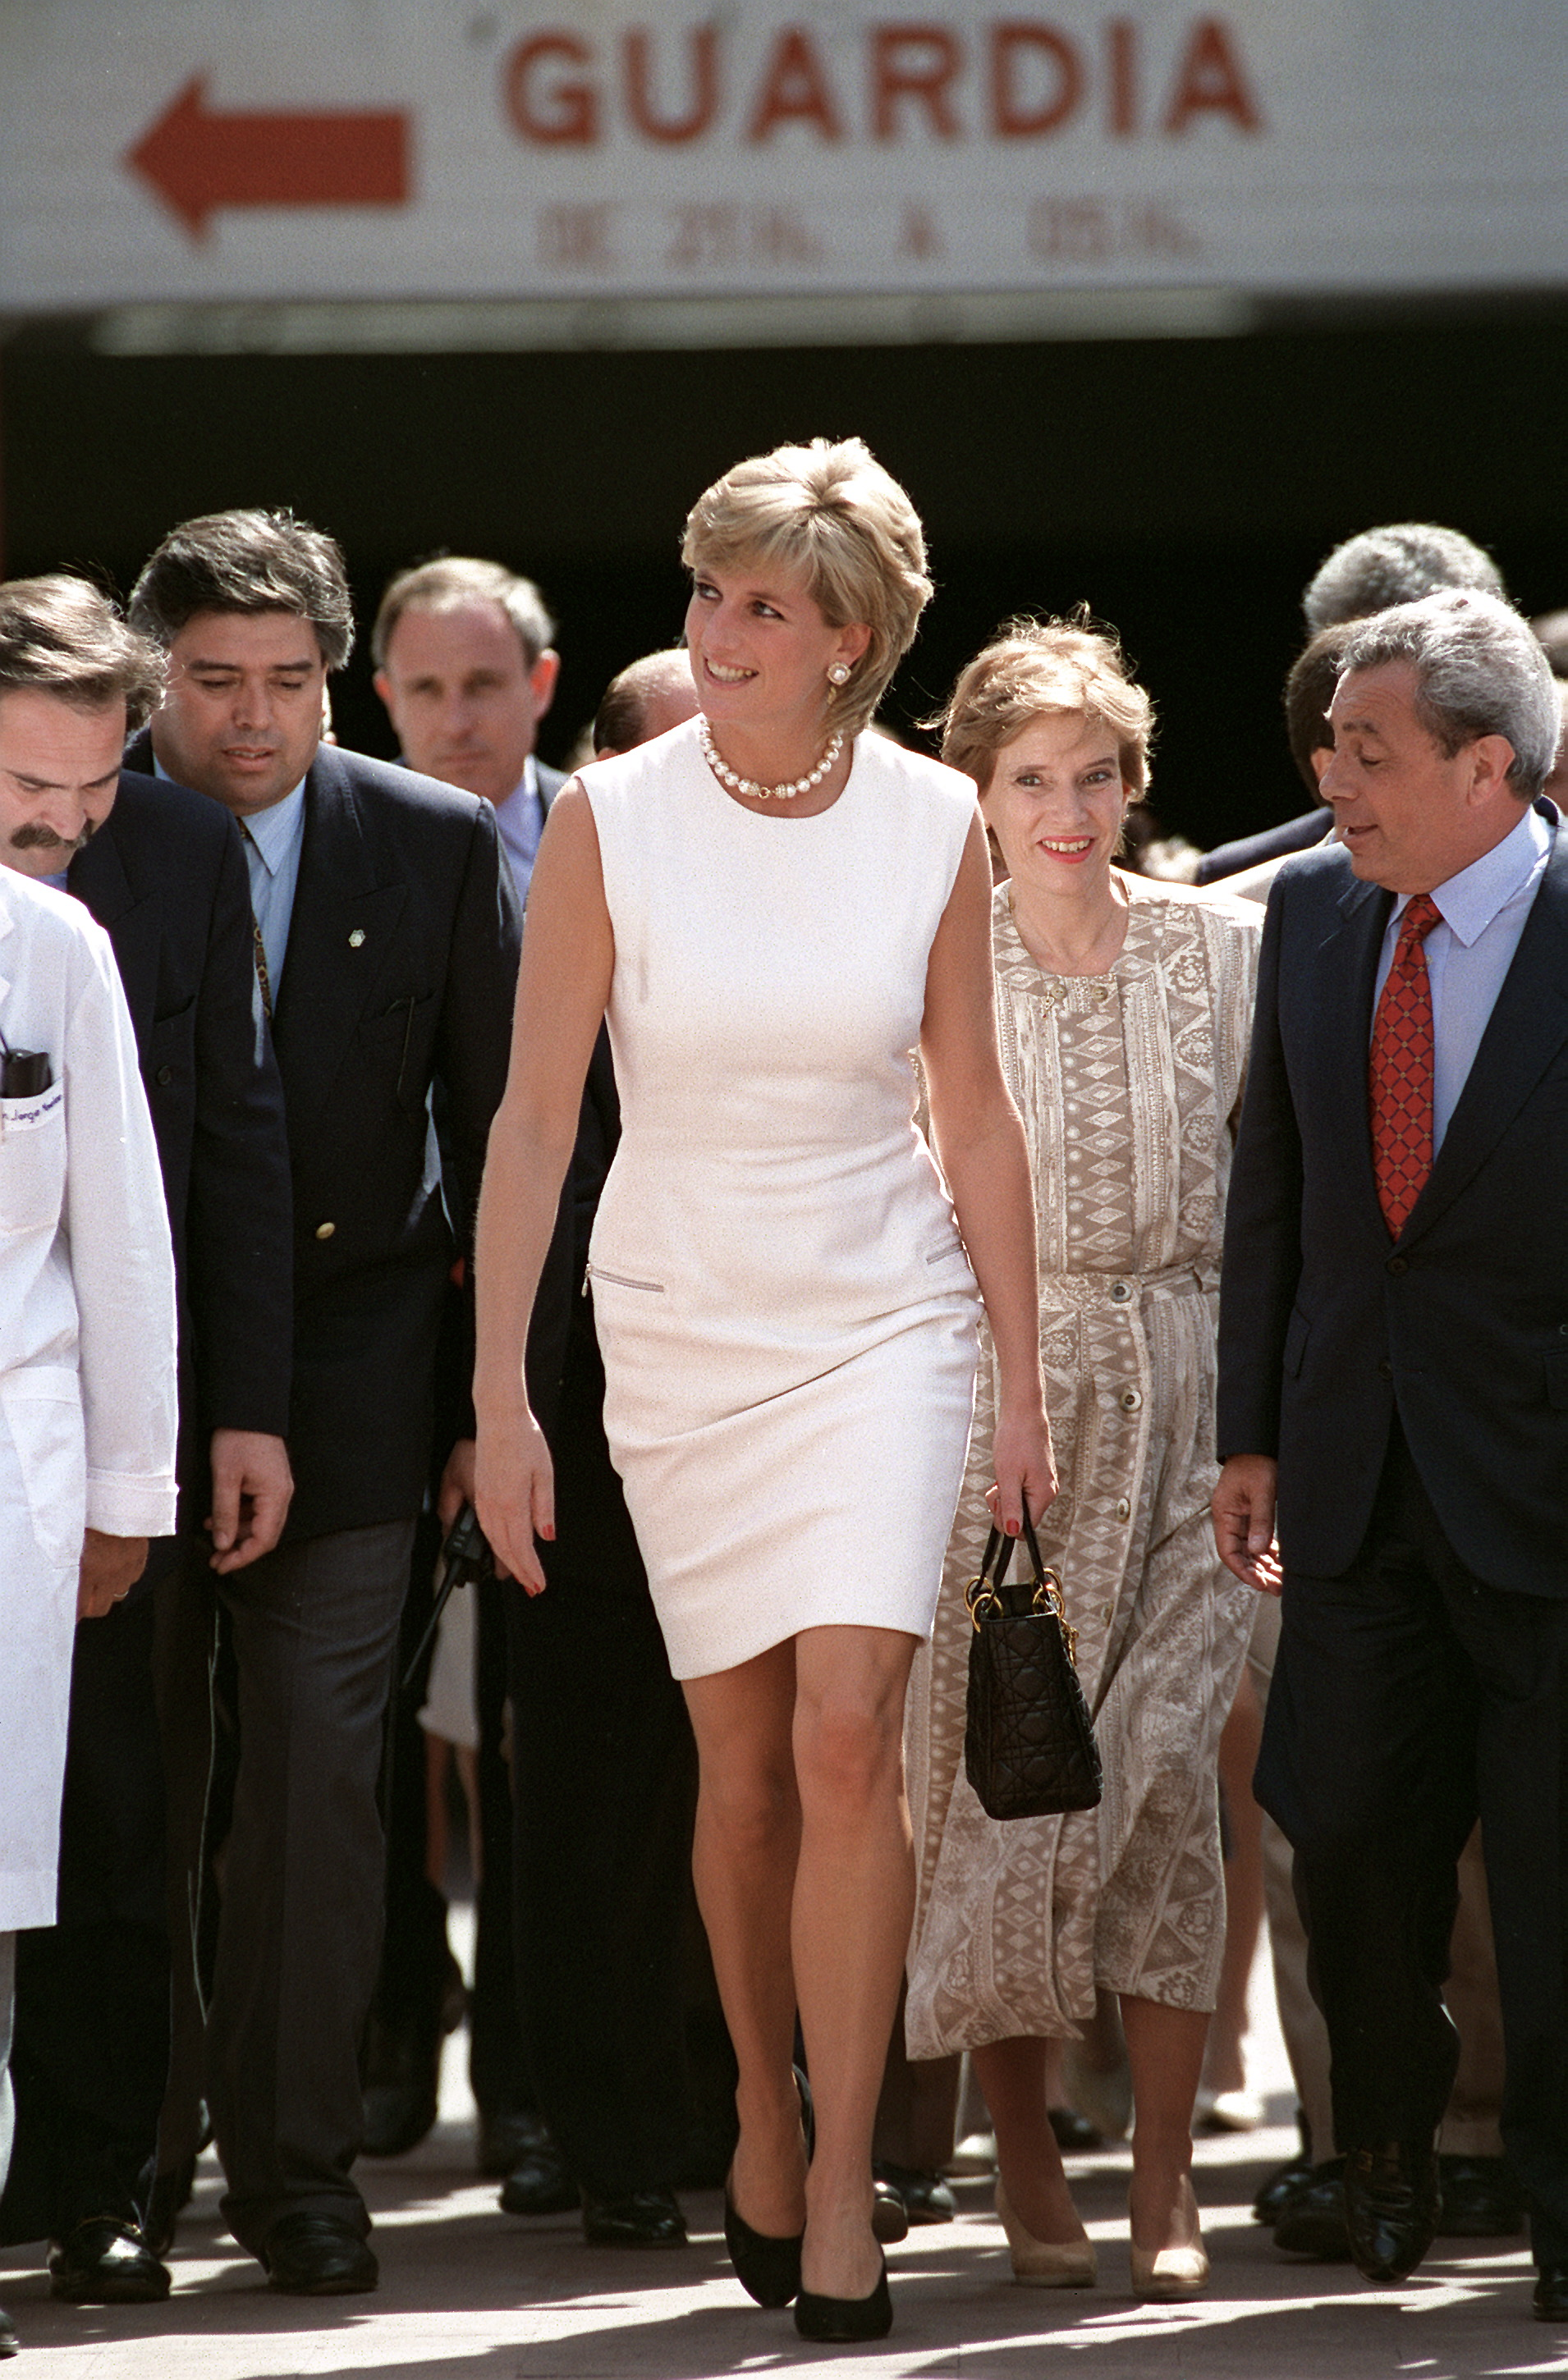 ARGENTINA - NOVEMBER 23: Diana, Princess Of Wales, Arrriving In Argentina. The Princess Is Wearing A White Sleeveless Shift Dress Designed By Fashon Designer Versace And Carrying A Black Christian Dior Handbag (Photo by Tim Graham/Getty Images)